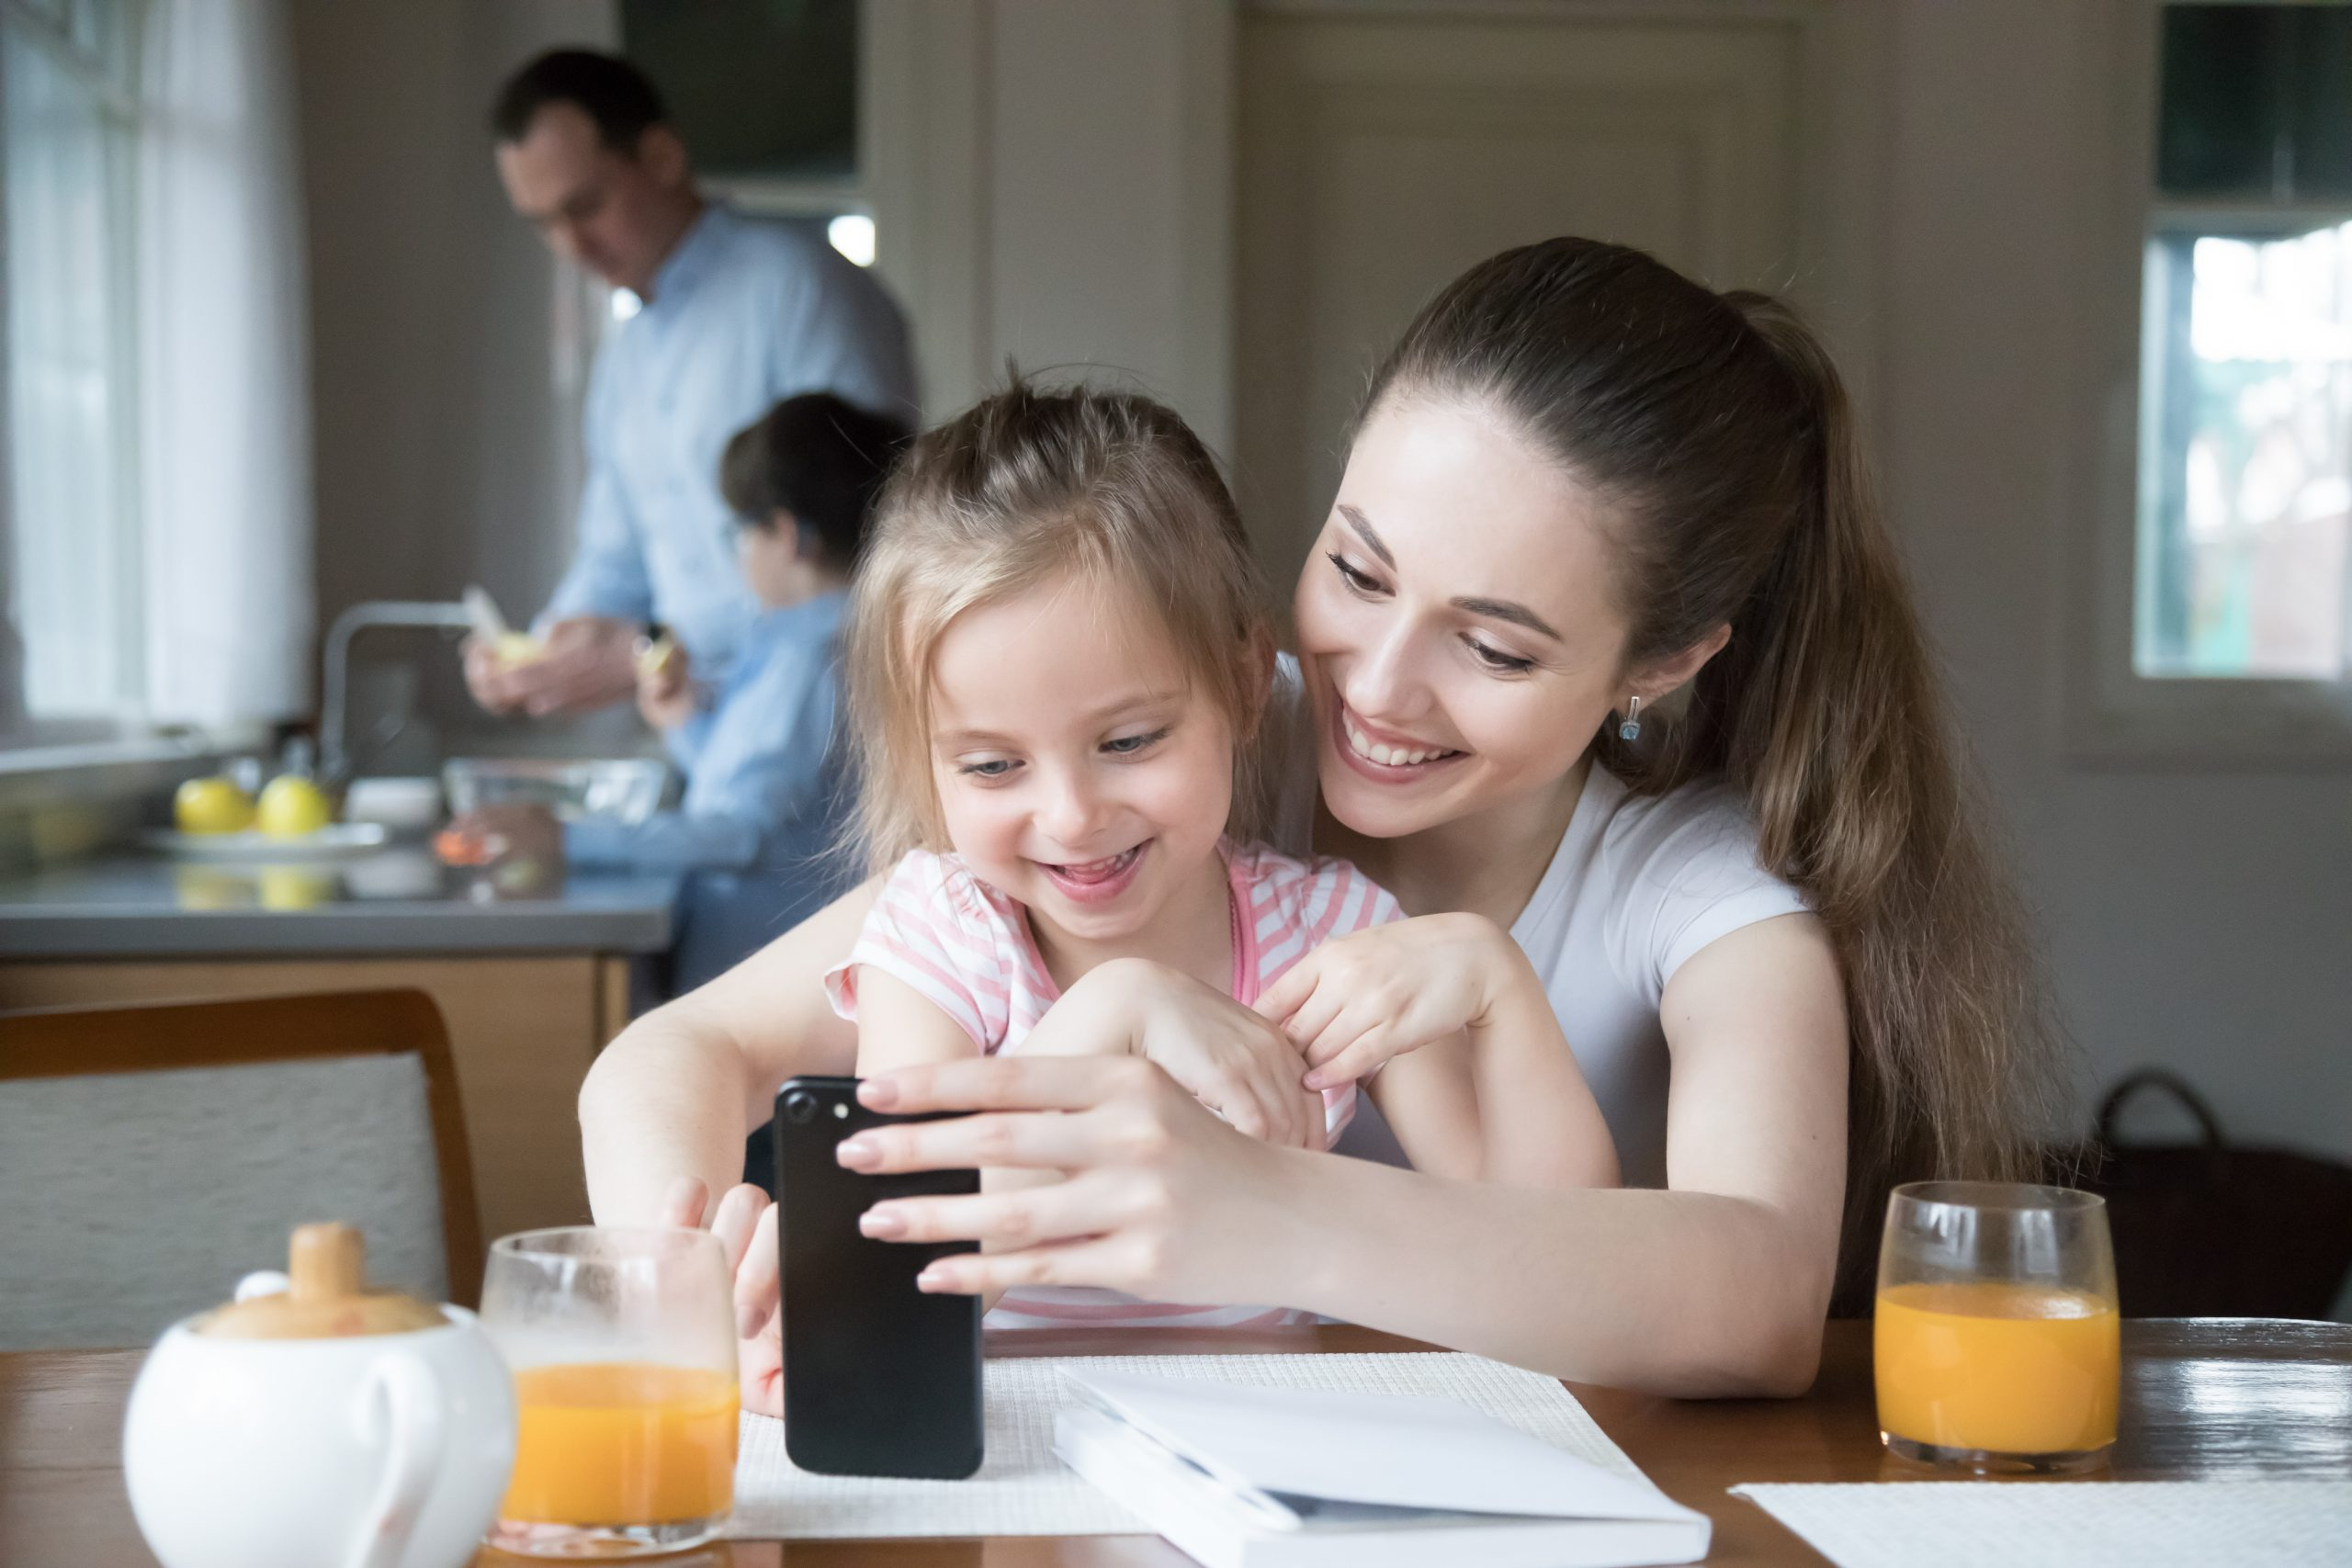 Happy mother and daughter sitting at kitchen table using smartphone